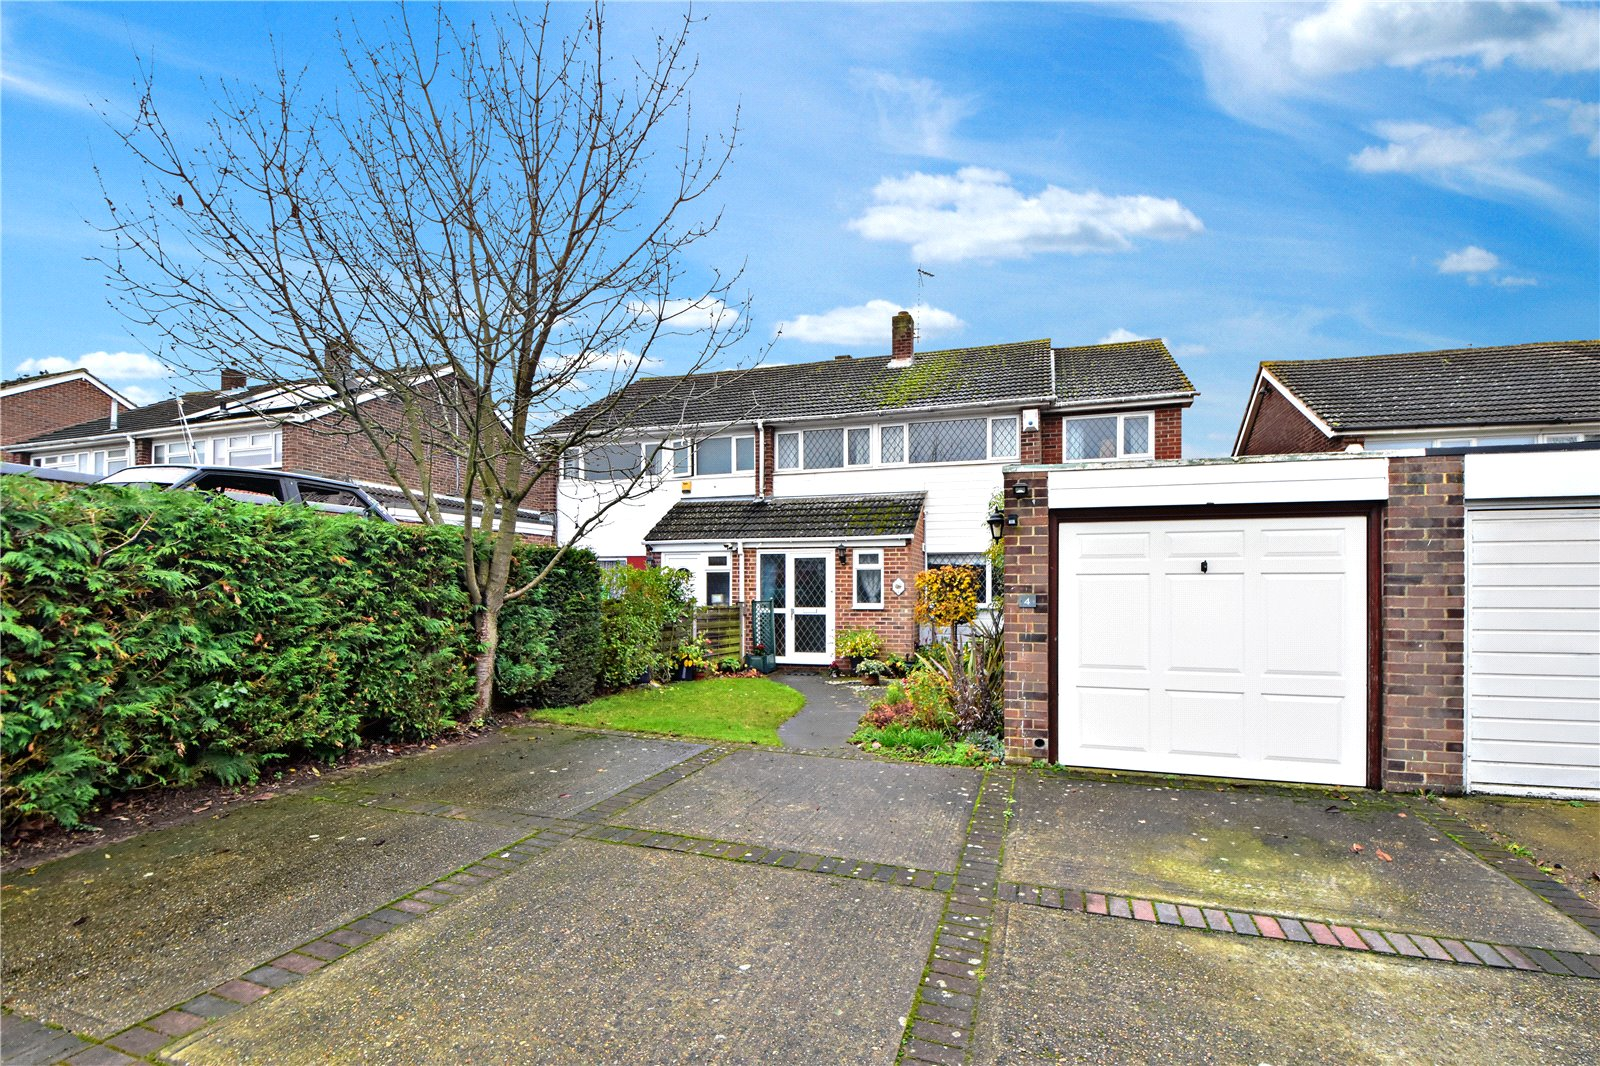 Foxwood Road, Bean, Dartford, Kent, DA2